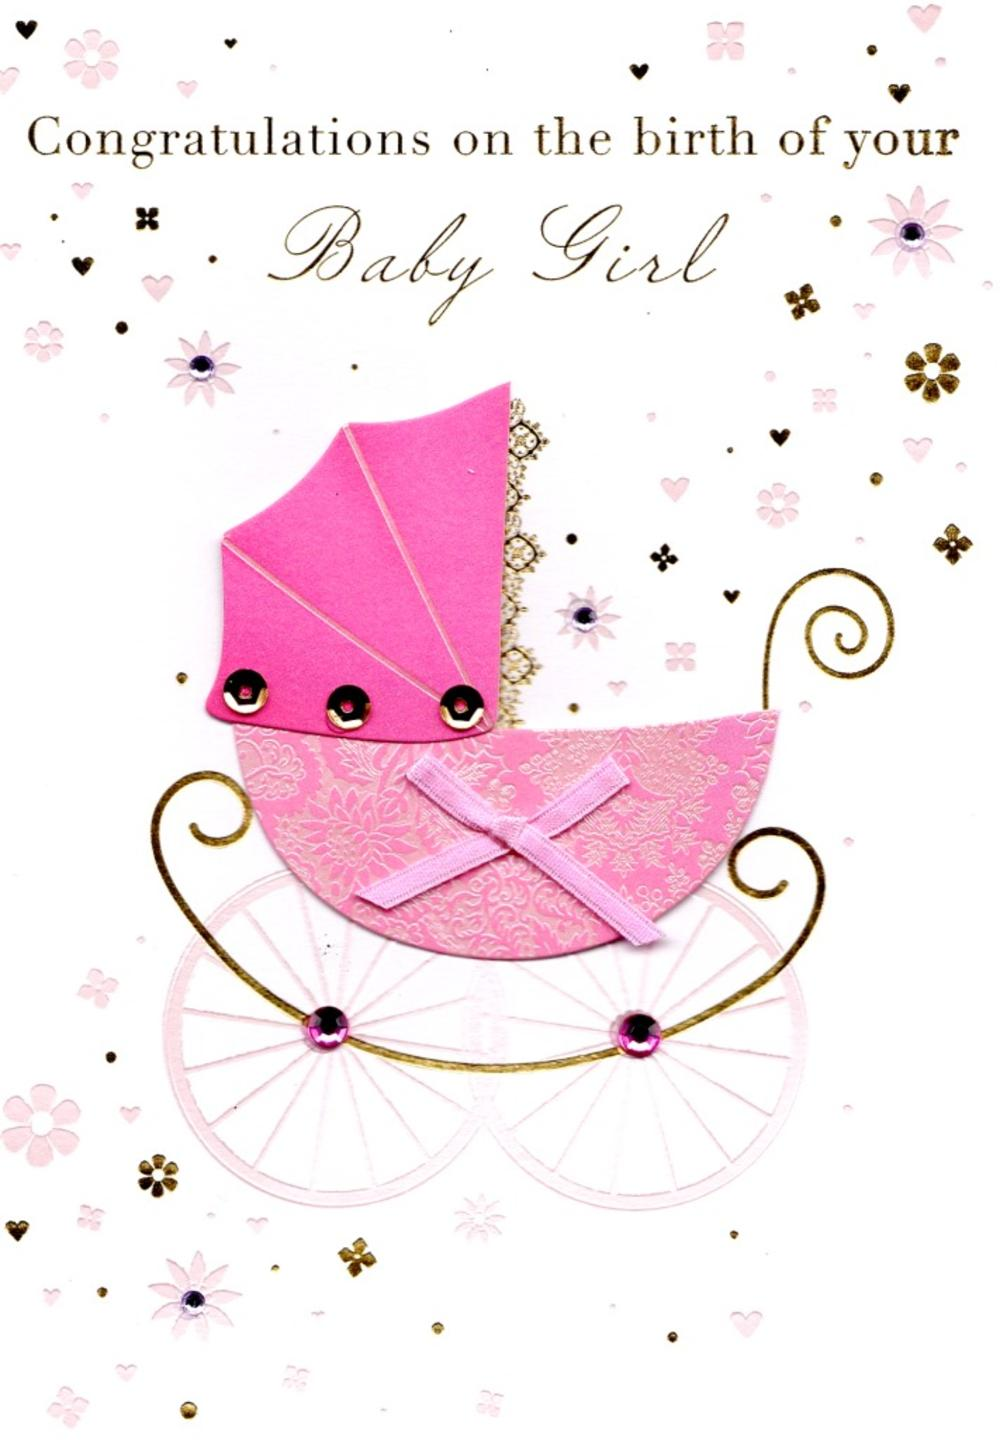 congratulations birth new baby girl greeting card